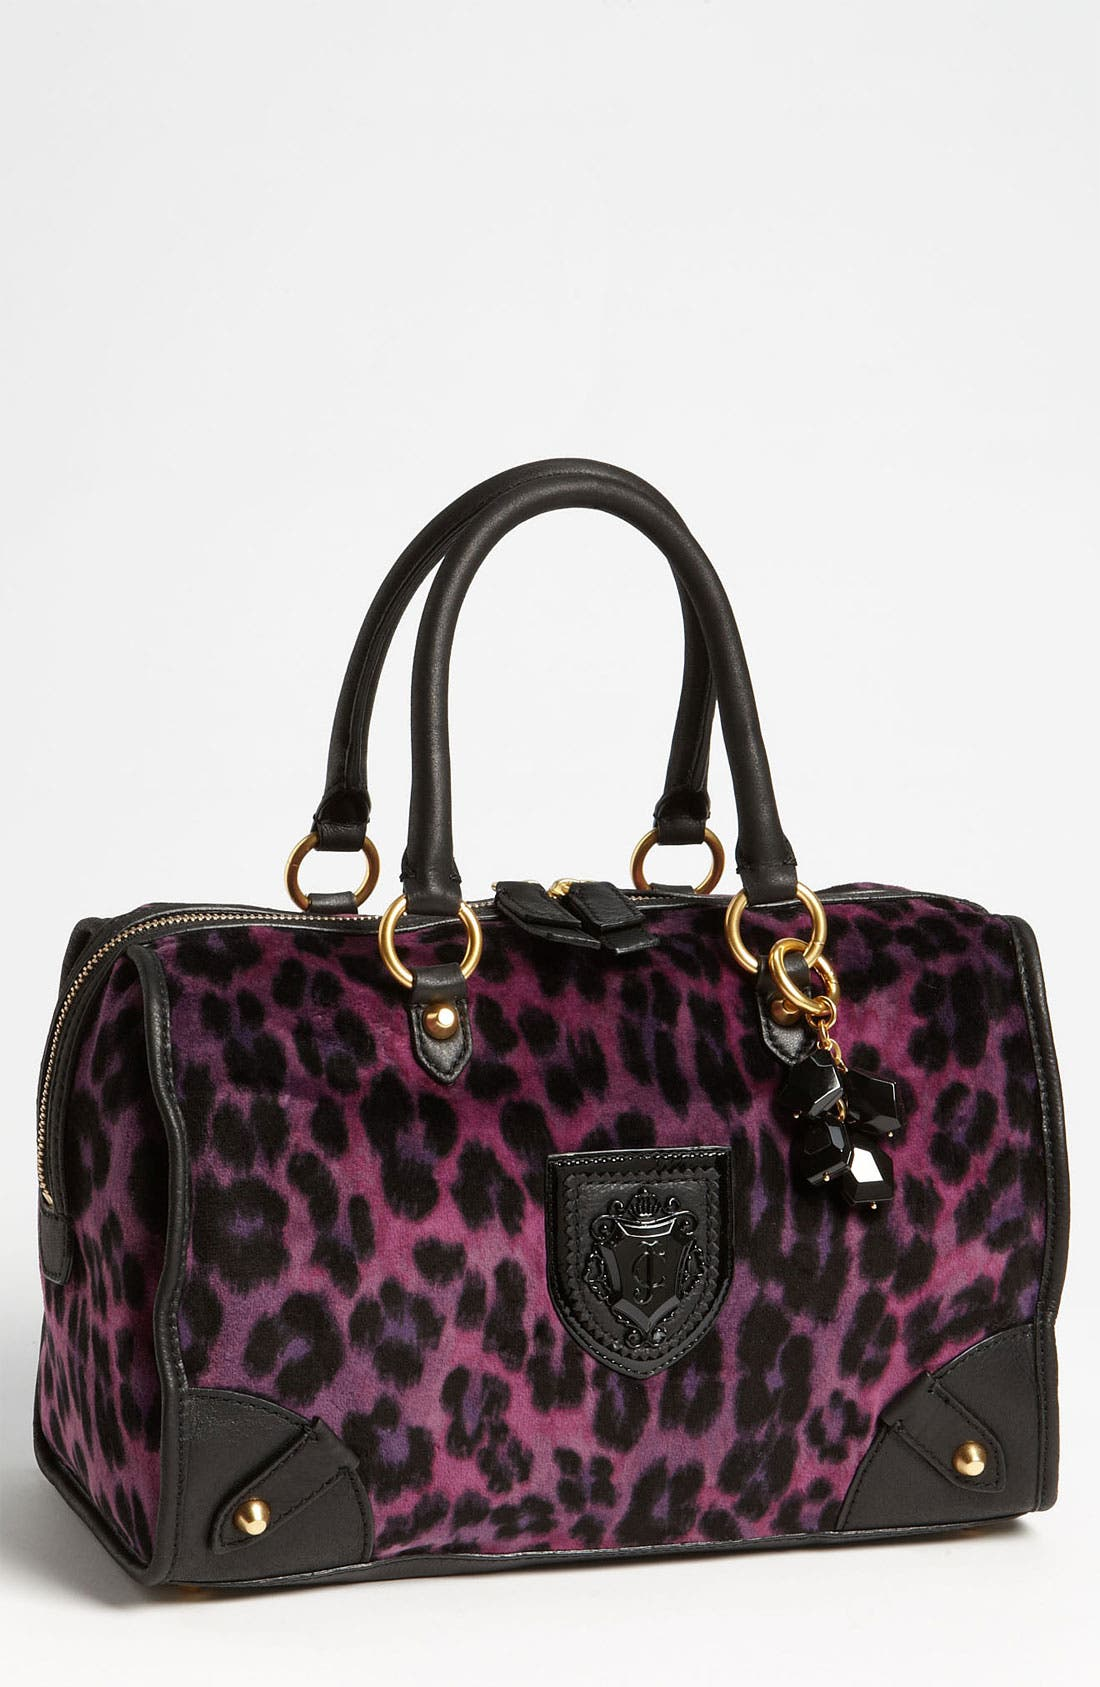 Alternate Image 1 Selected - Juicy Couture 'Wild Things - Steffy' Satchel